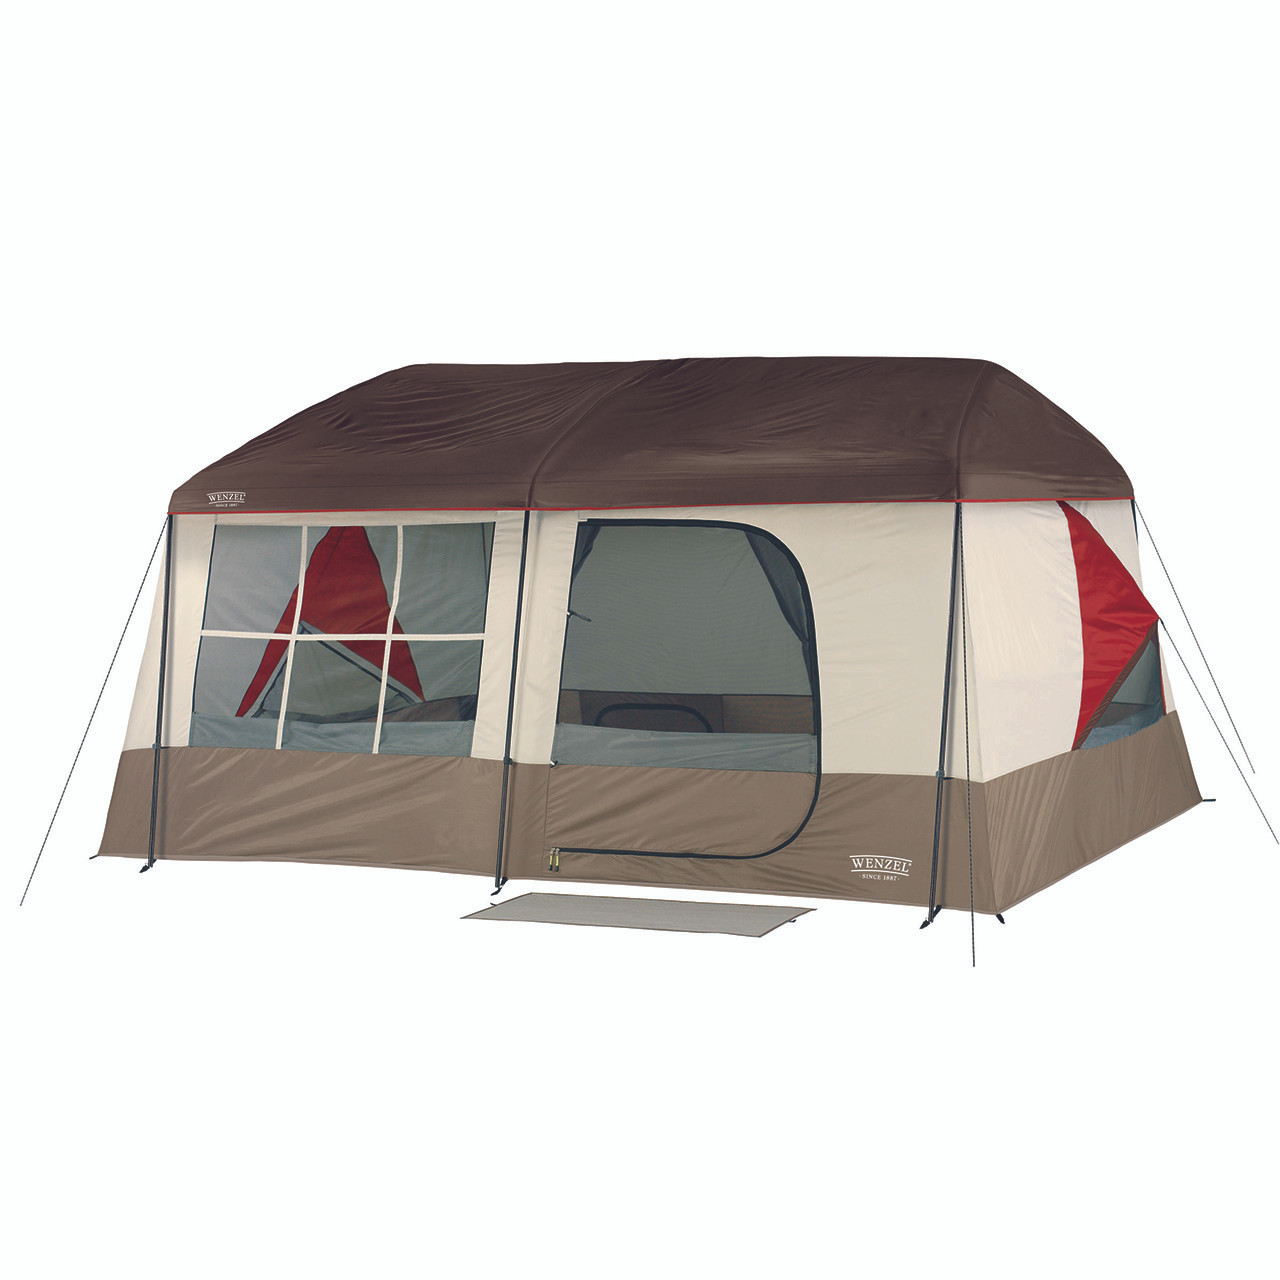 Wenzel Kodiak 9 tent setup with the rain fly on and the main screen door windows open with the side vent open and guy line extended